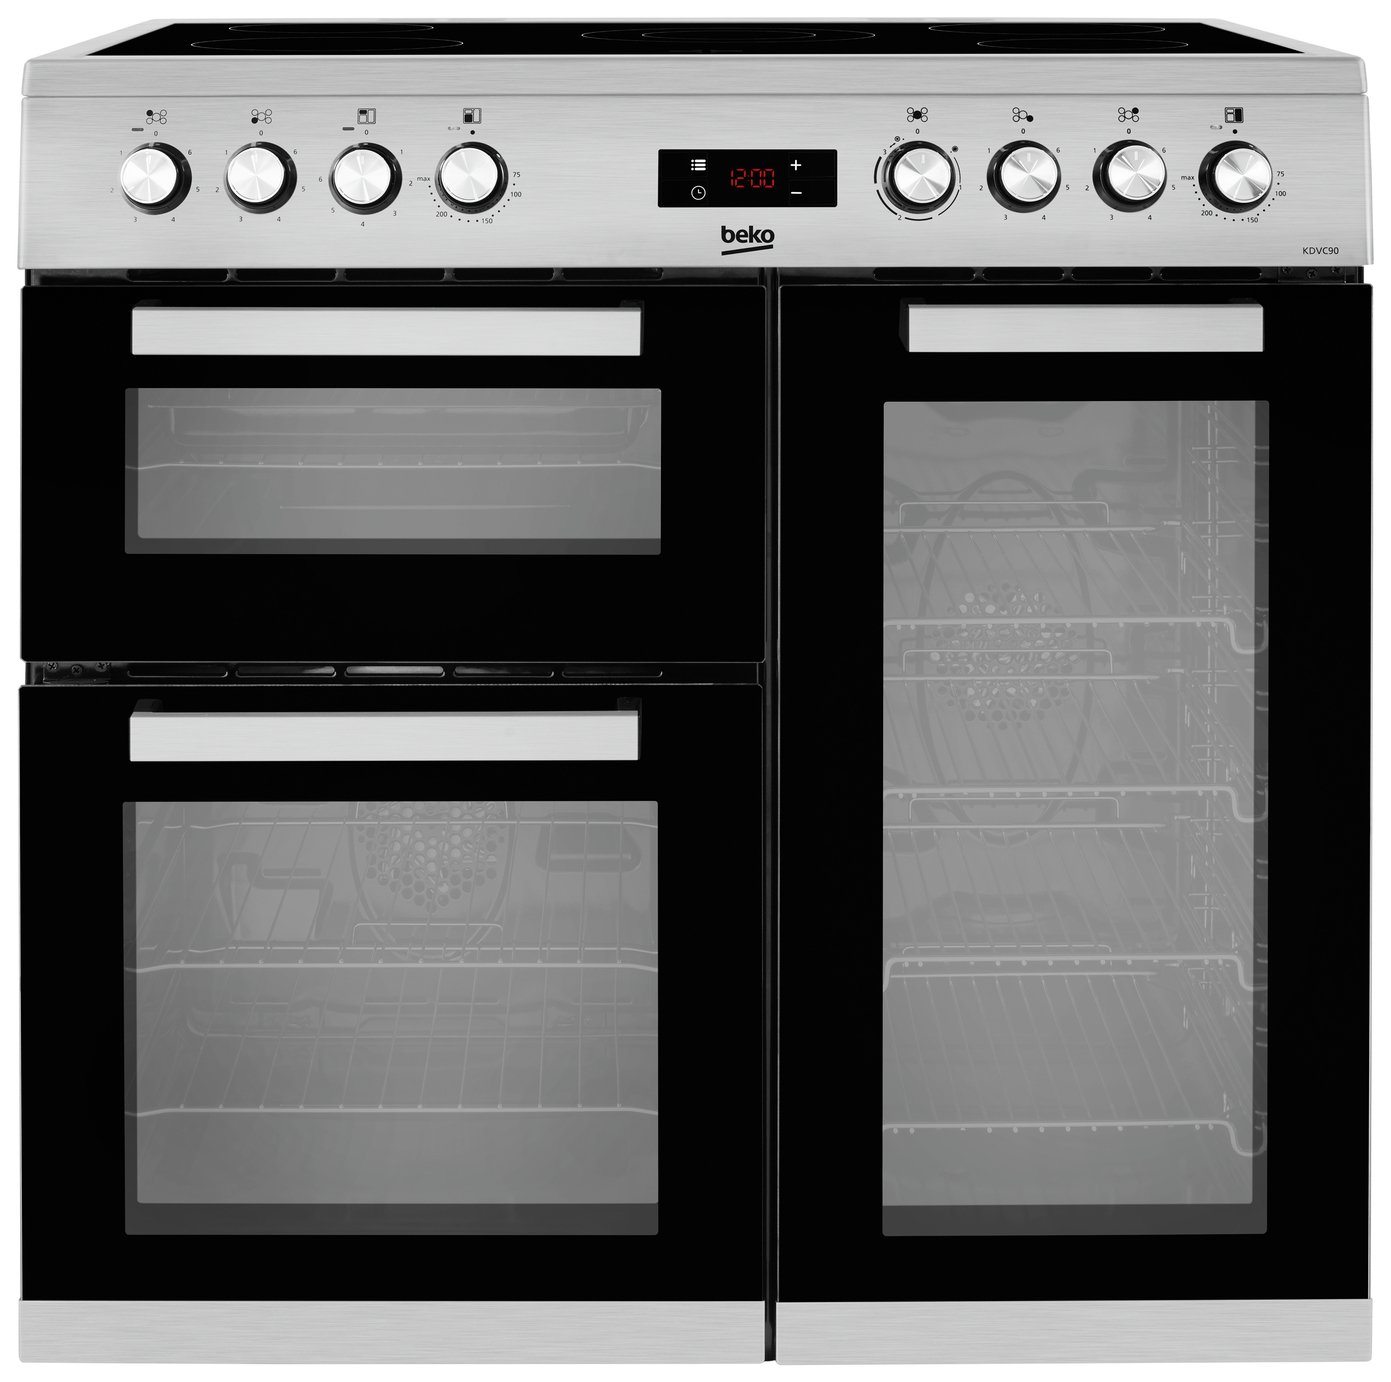 Beko KDVC90X 90cm Electric Range Cooker - Stainless Steel from Beko